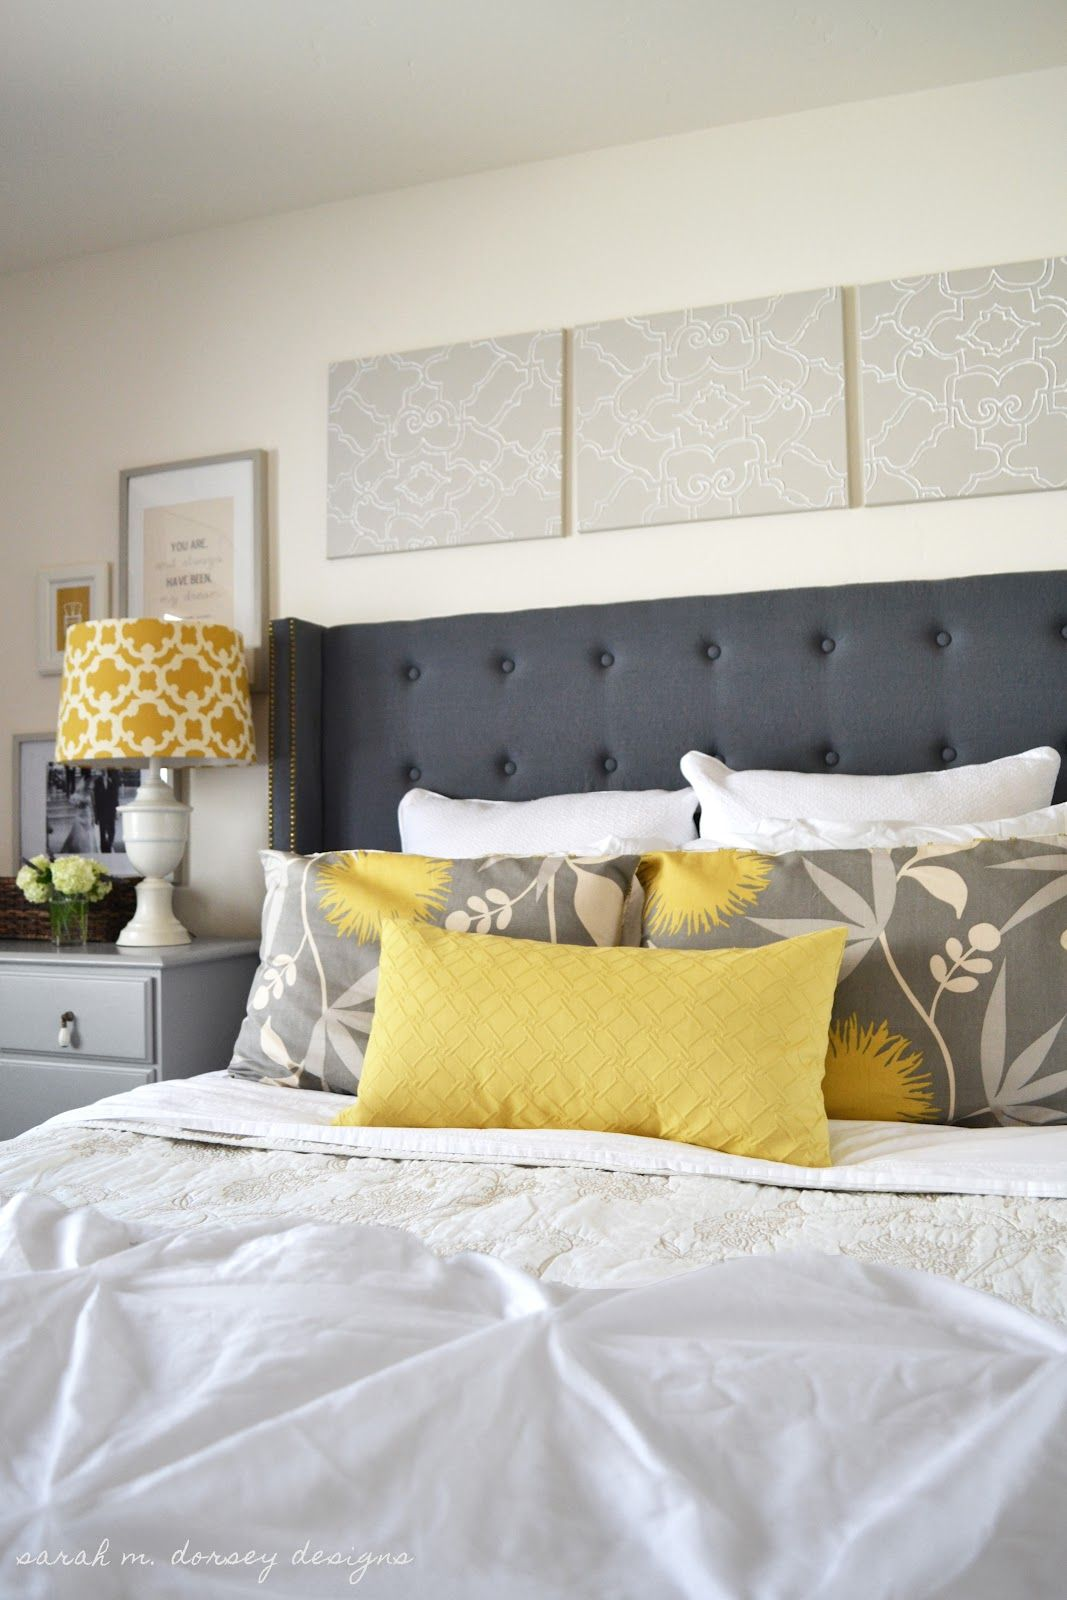 Diy Tufted Headboard With Wings And Nailhead Trim